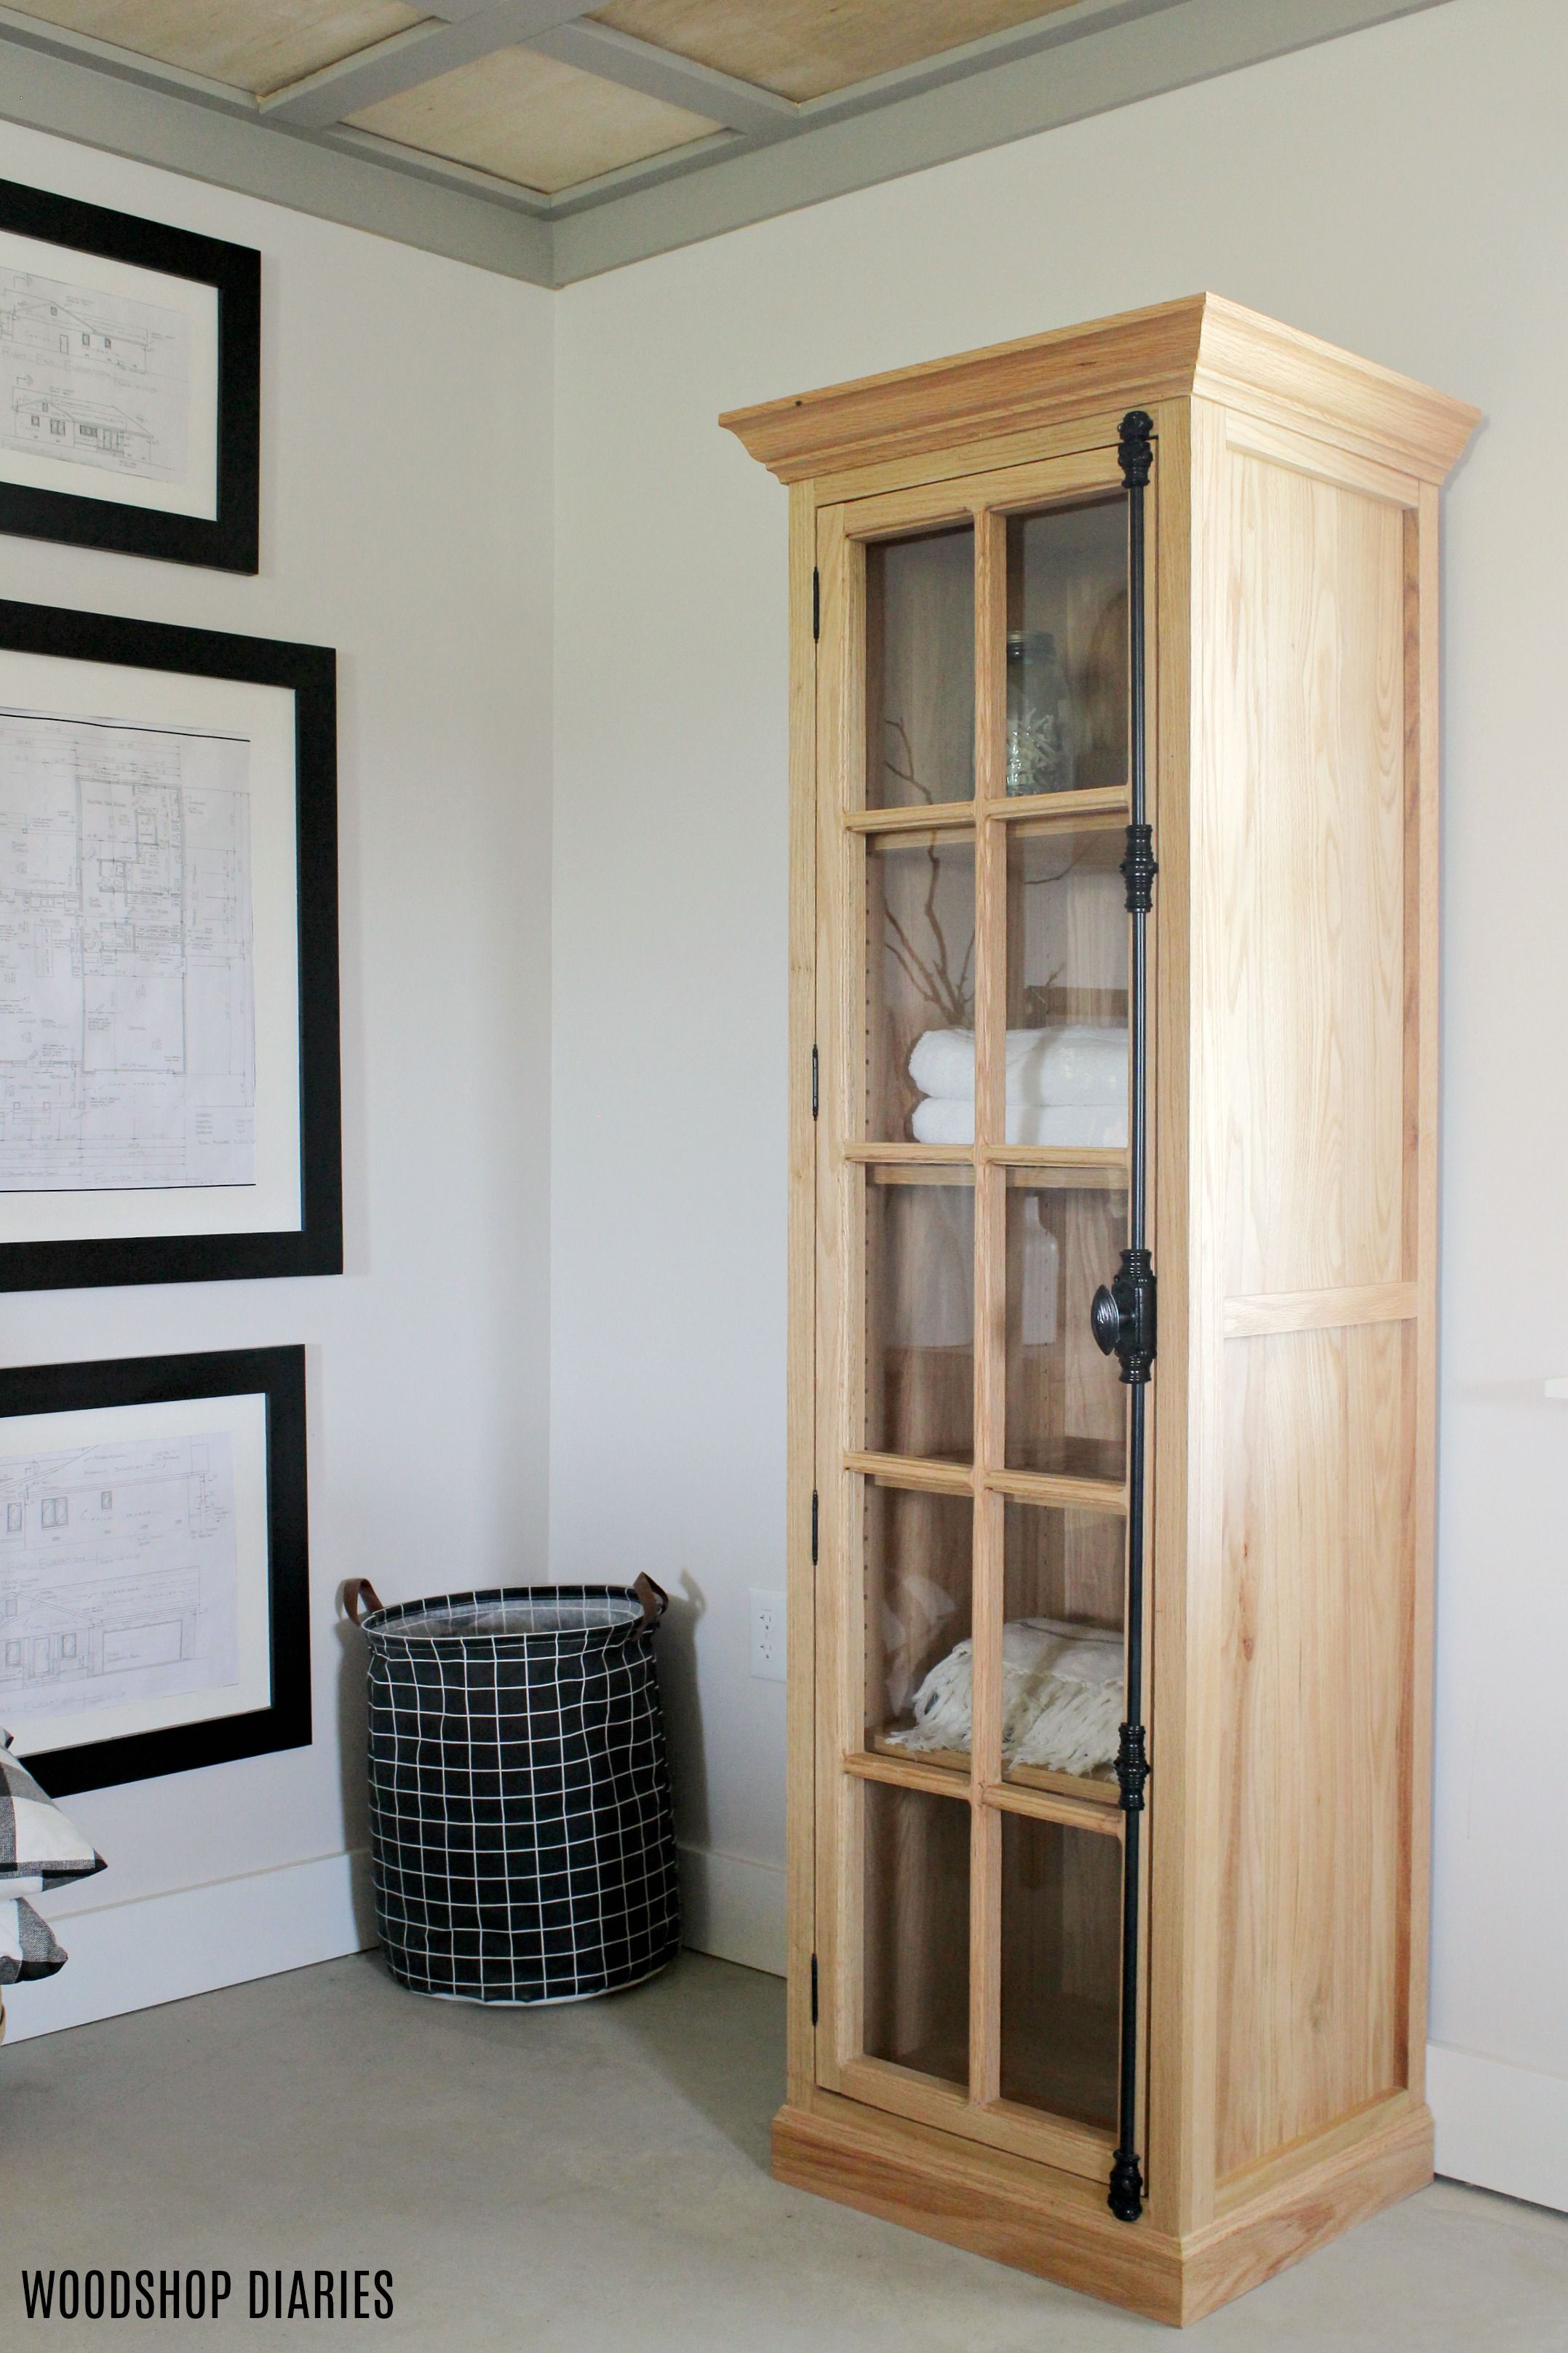 Diy Linen Cabinet With Glass Door Plans And Tutorial Glass Cabinet Doors Linen Cabinet Diy Linen Cabinet